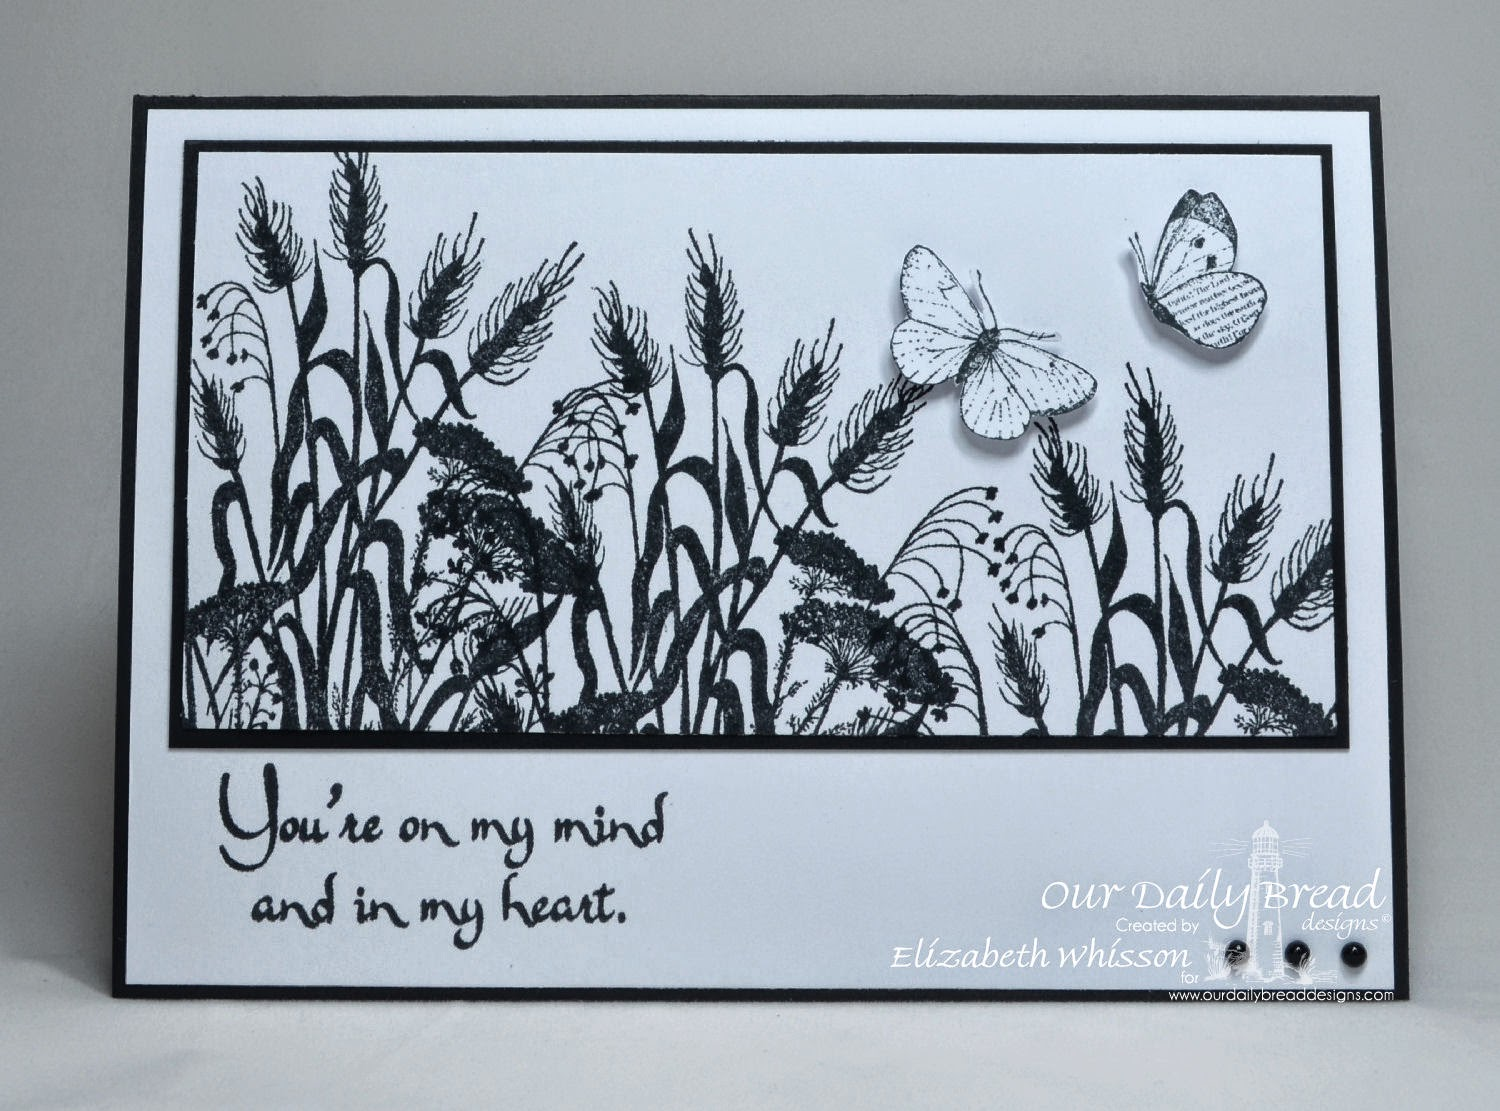 Elizabeth Whisson, Our Daily Bread Designs, ODBD, ODBDDT, Miss You, Faith, butterflies, black and white, handmade card